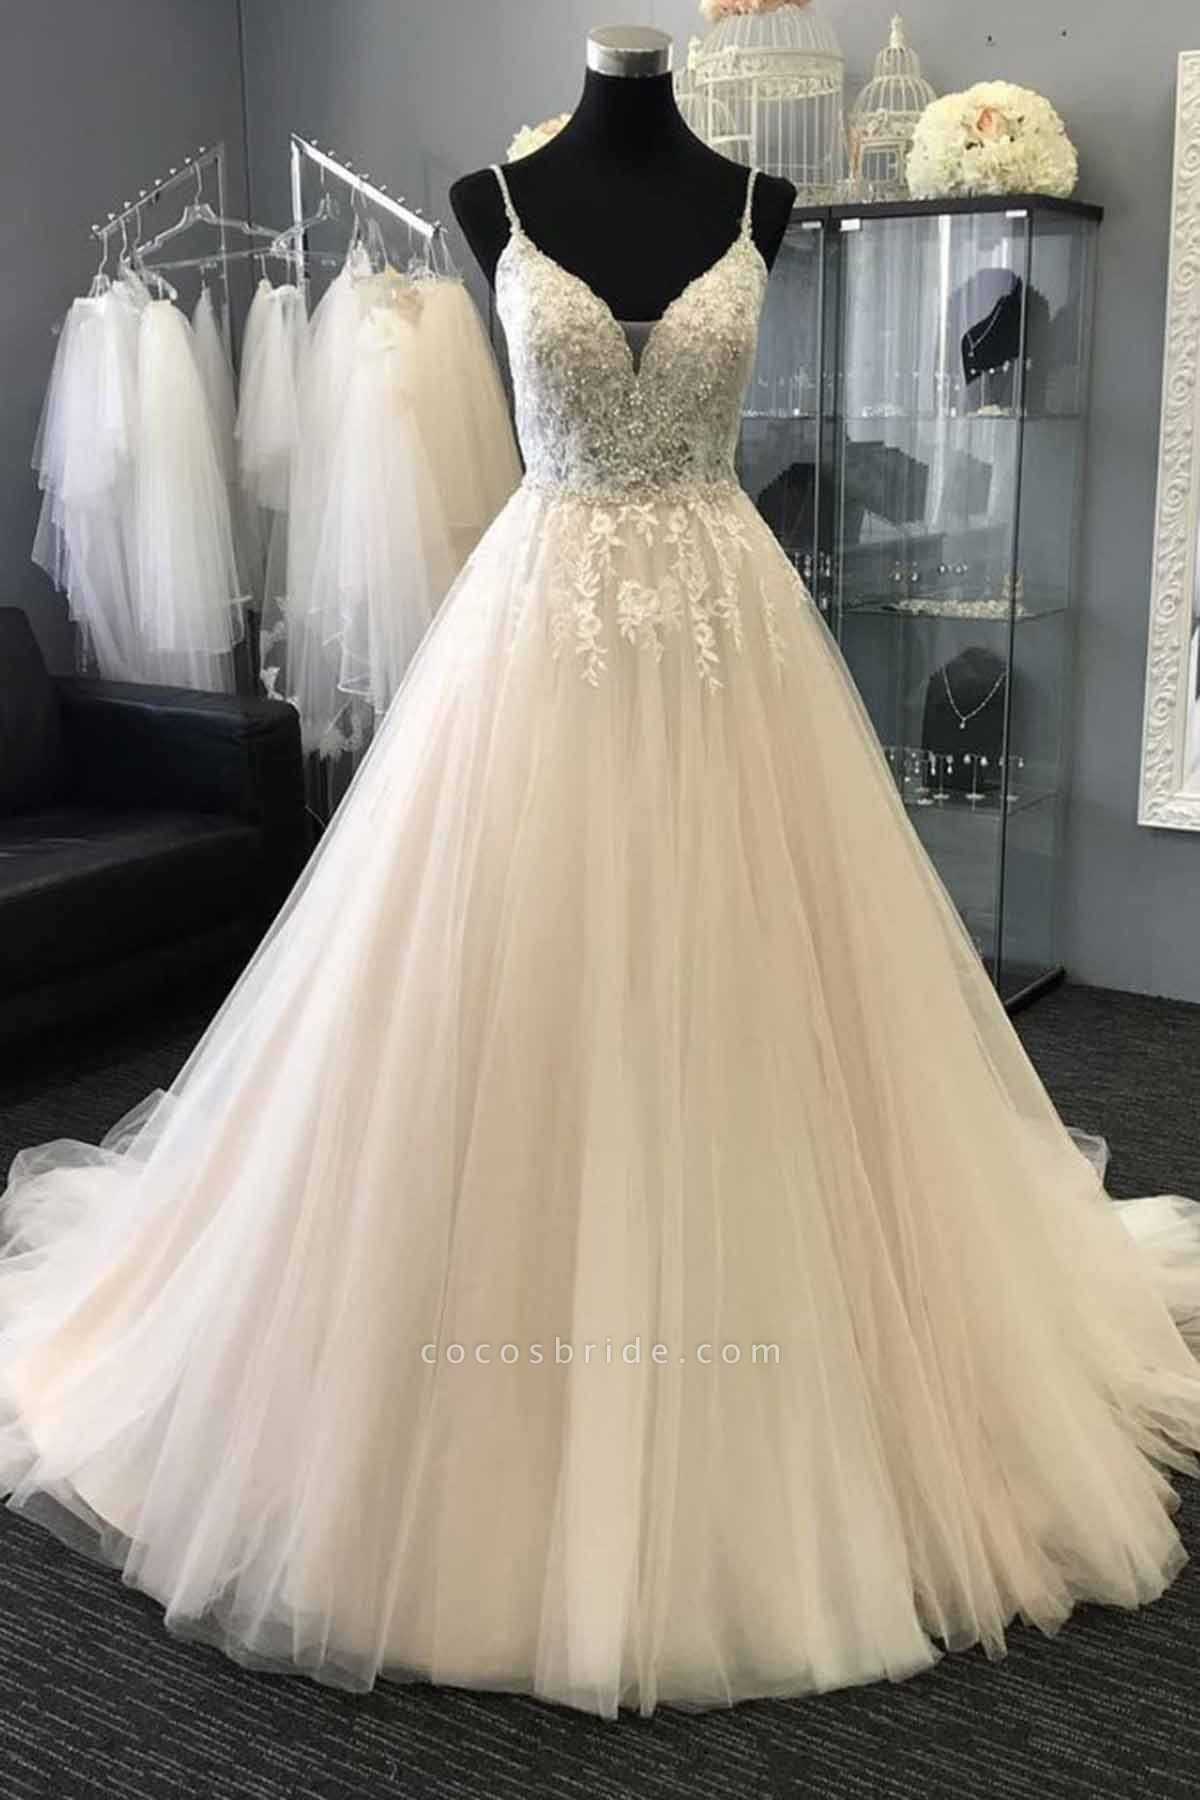 Sweetheart Neck Long Lace Top White Long Wedding Dress